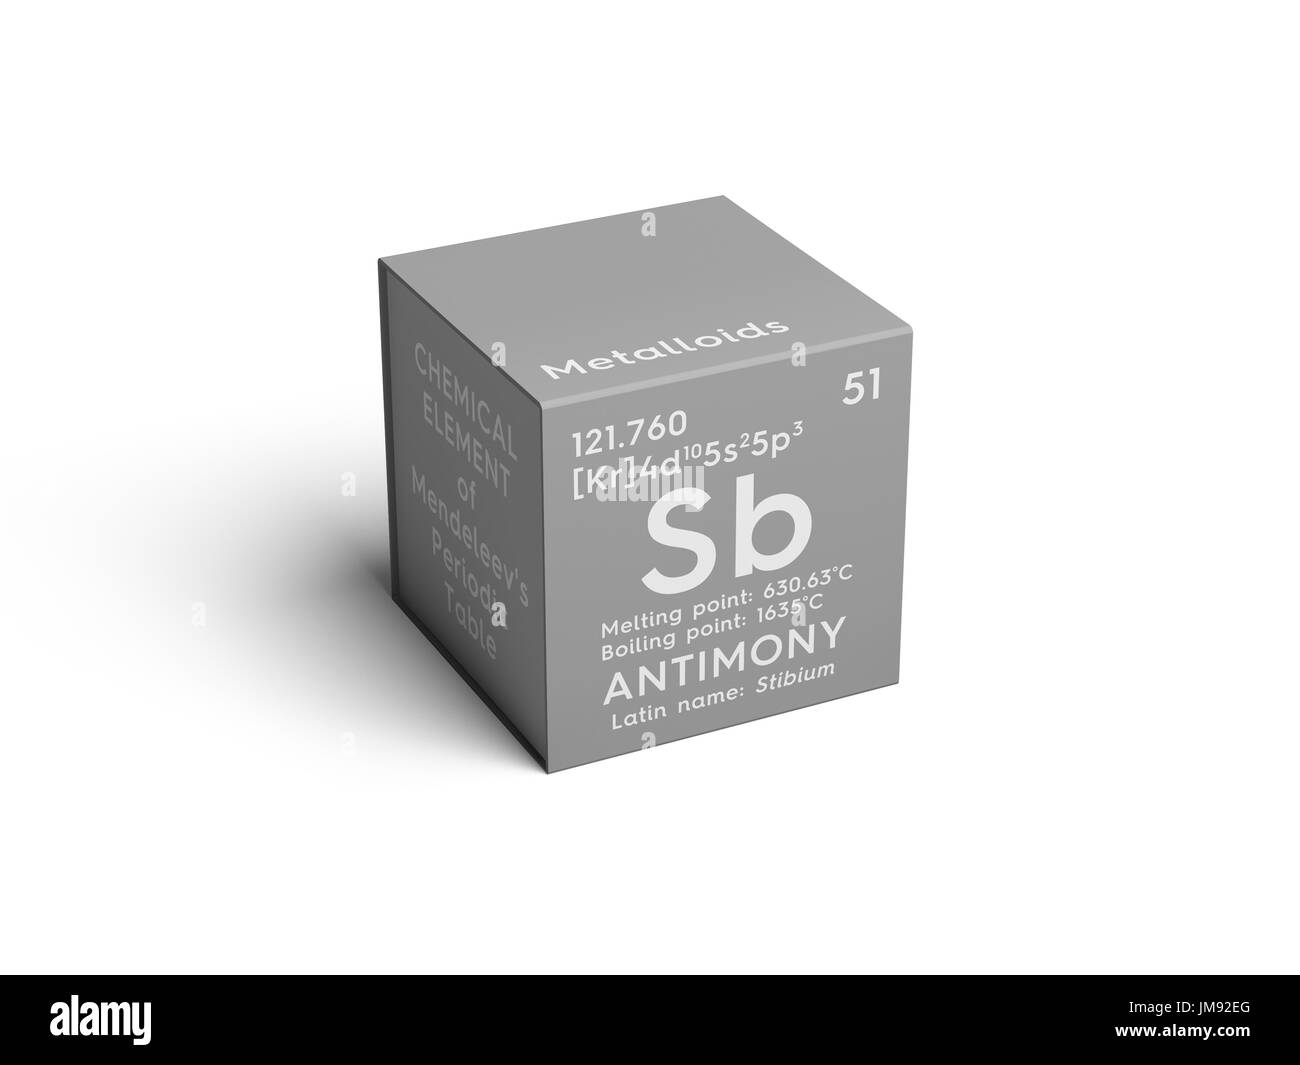 Antimony stibium metalloids chemical element of mendeleevs antimony stibium metalloids chemical element of mendeleevs periodic table antimony in square cube creative concept biocorpaavc Images